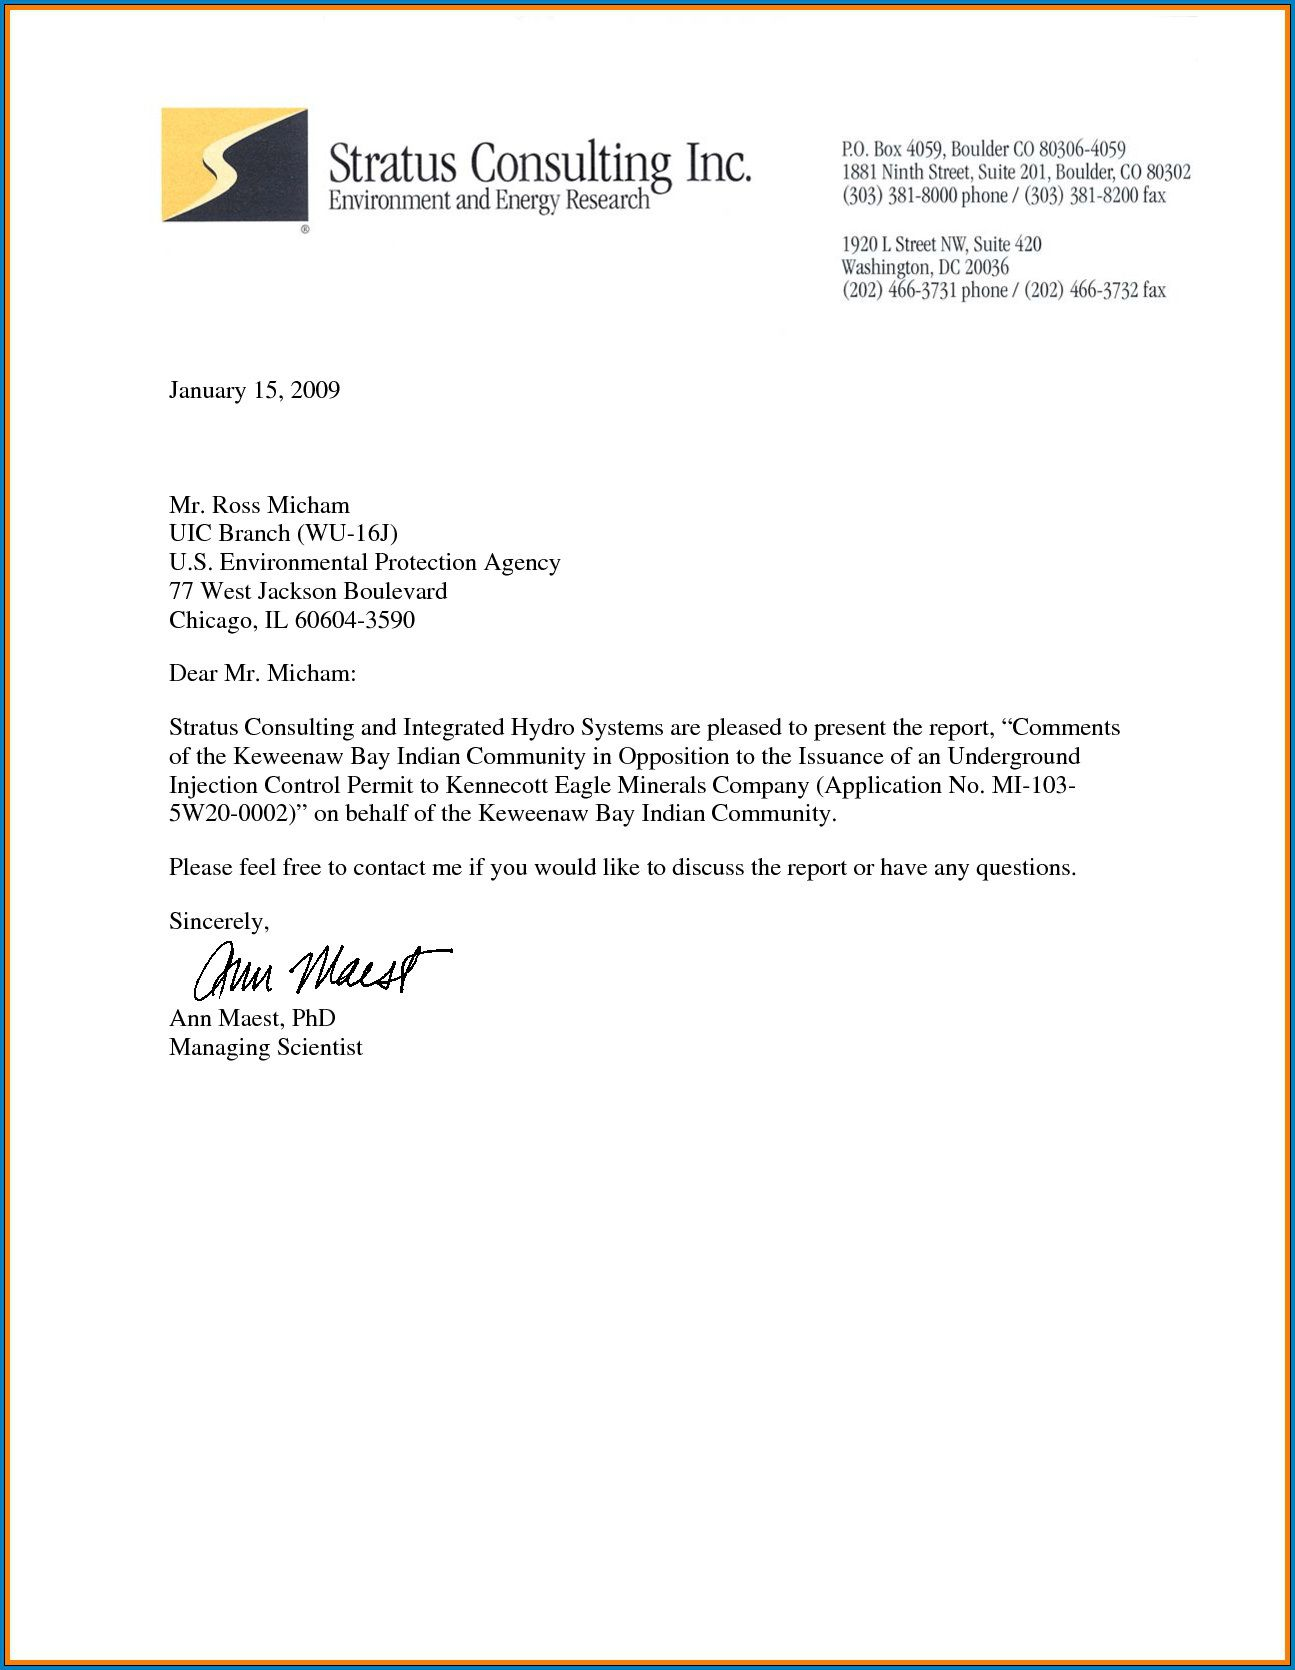 002 Staggering Sample Busines Letter Template Inspiration  Of Intent Formal FreeFull